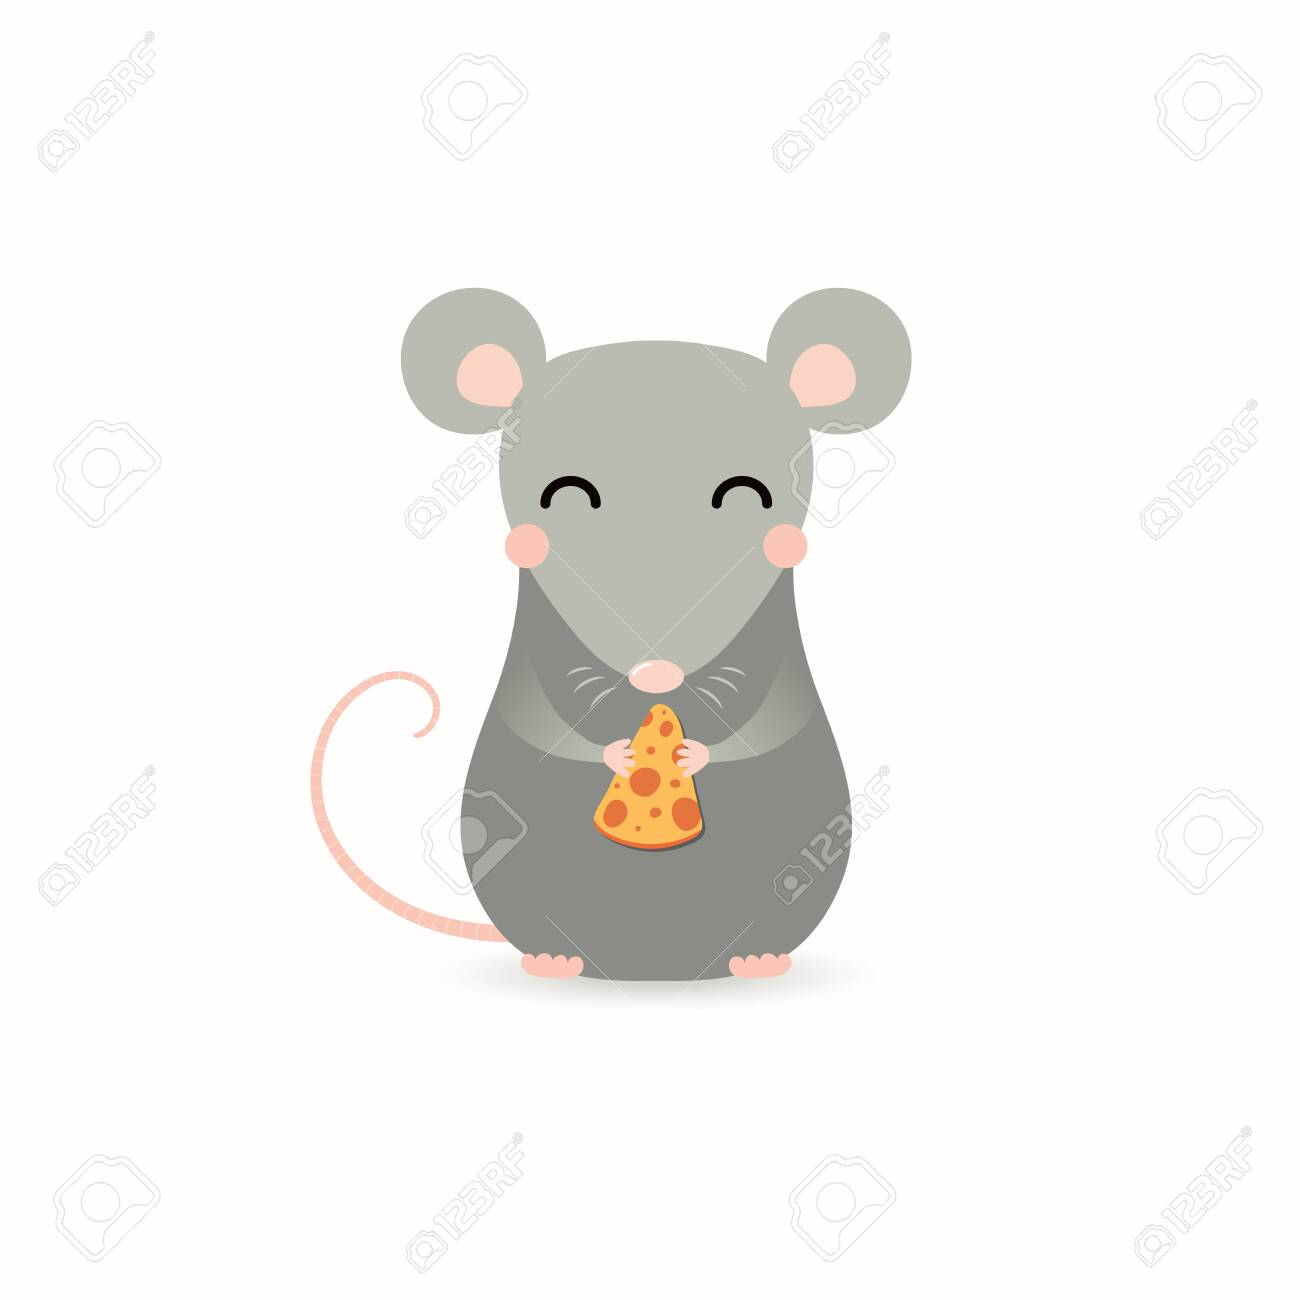 Hand drawn vector illustration of a cute little rat with a piece of cheese. Isolated objects on white background. Flat style design. Concept for Chinese New Year greeting card, holiday banner, decor. - 124419833